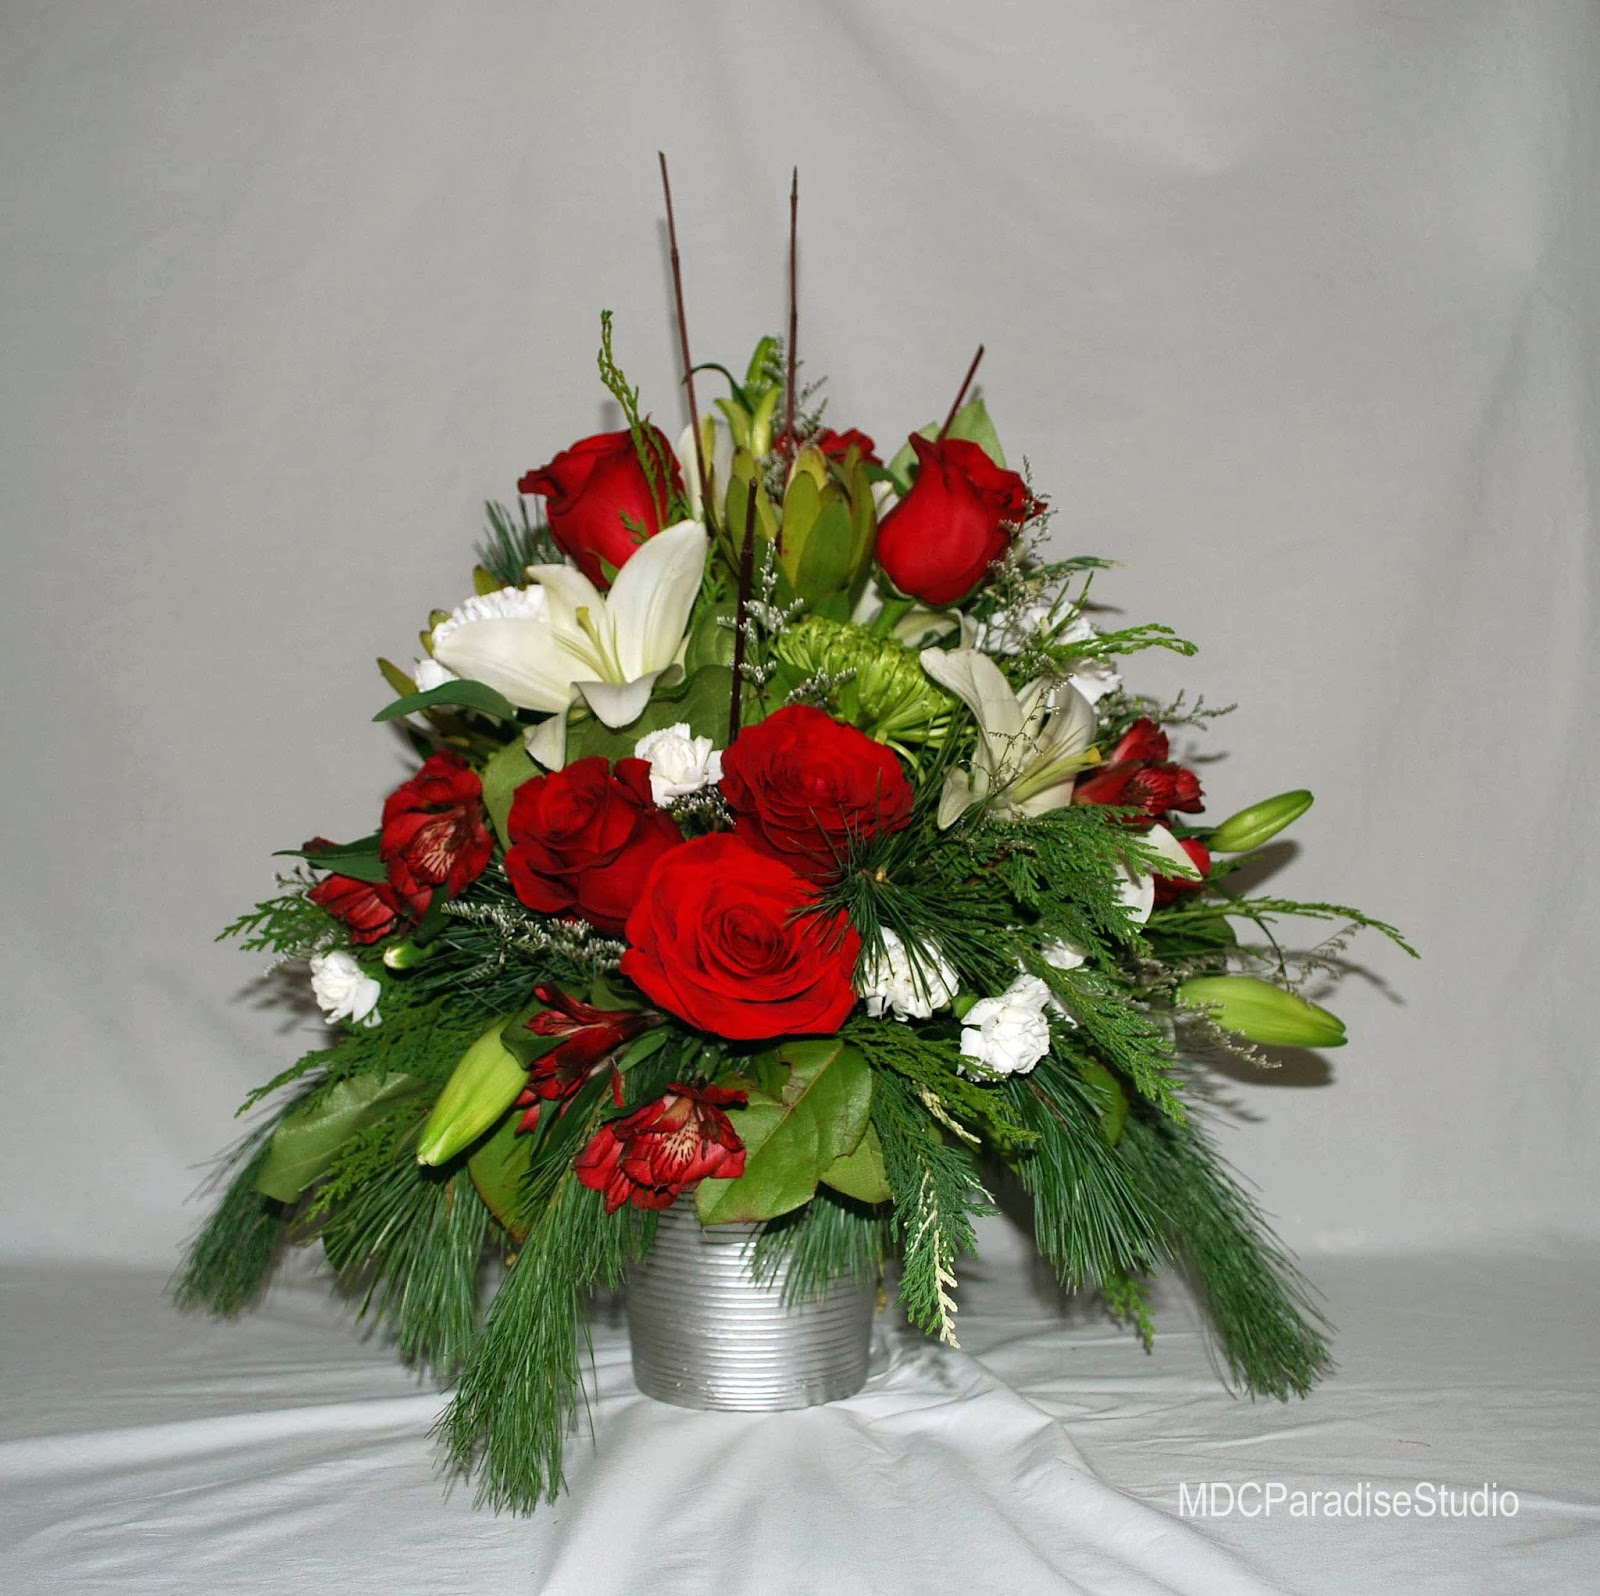 Paradise floral studio christmas flower arrangements for Poinsettia arrangements